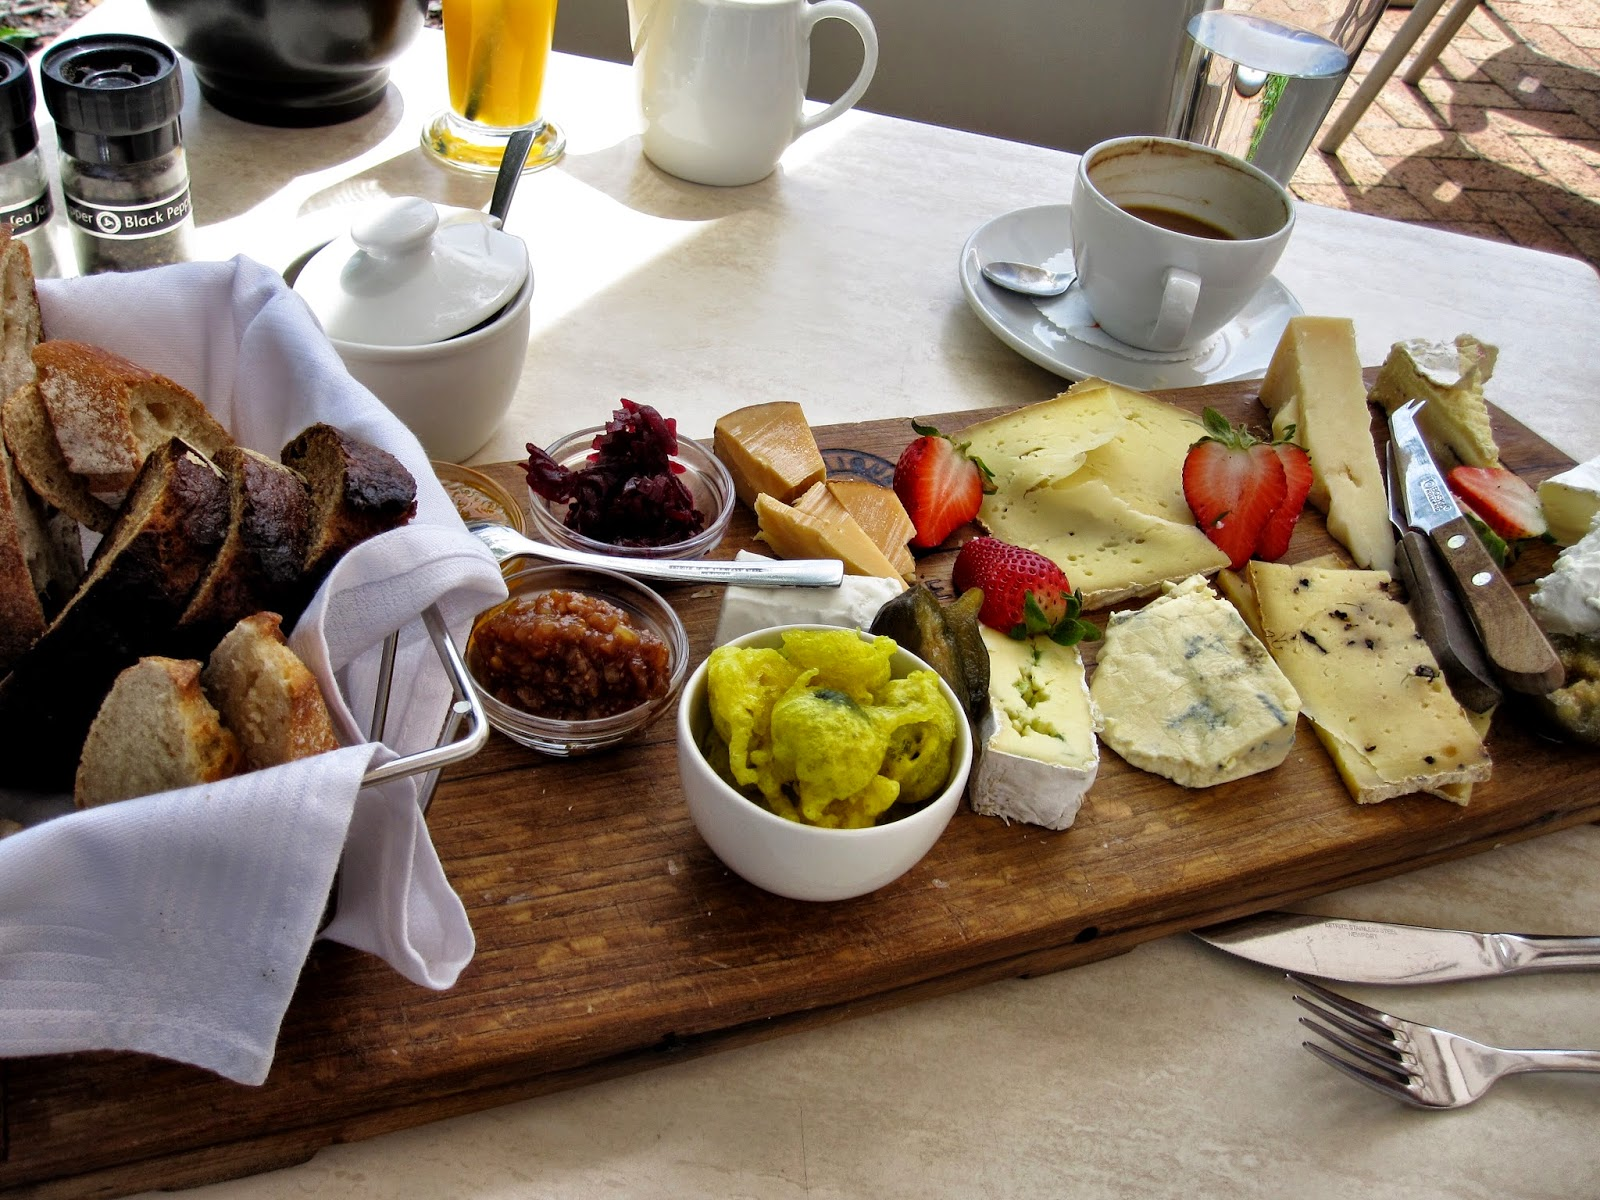 Cheese platter from a winery in Franschhoek